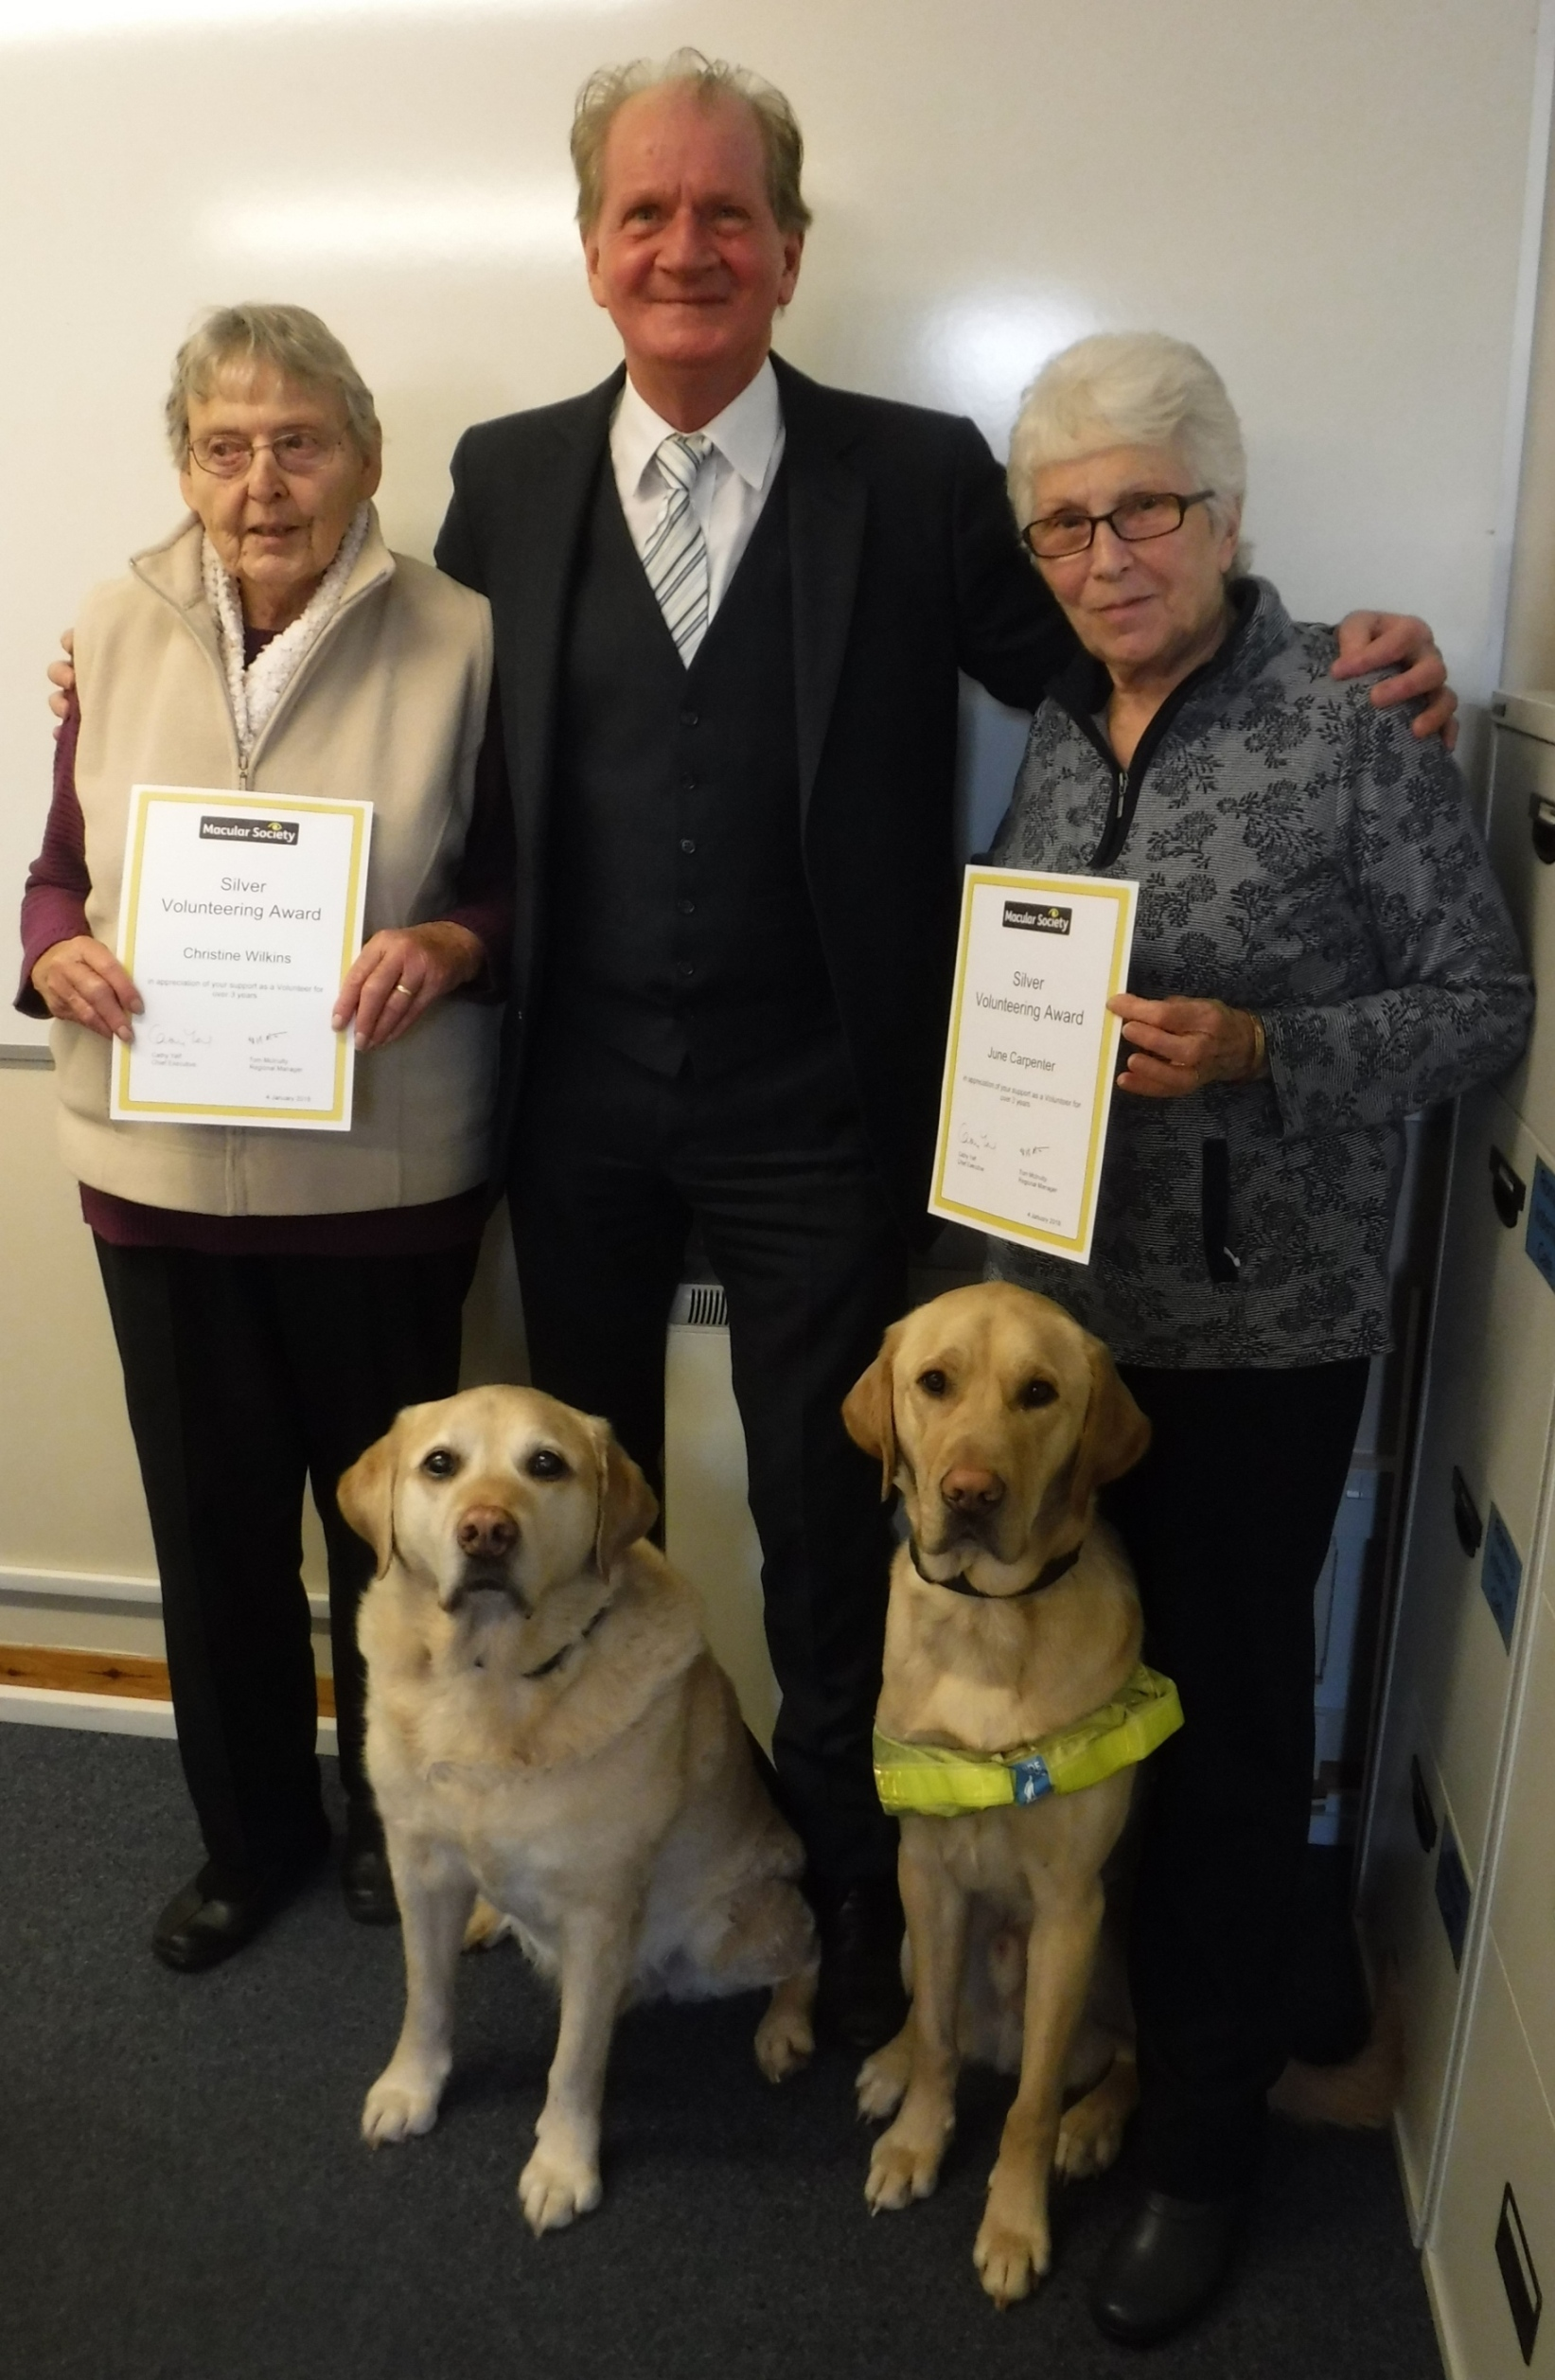 Christine Wilkins (left) and June Carpenter (right) receive their awards from Macular Society regional manager Tom McInulty and guide dogs Brunel and Toby.